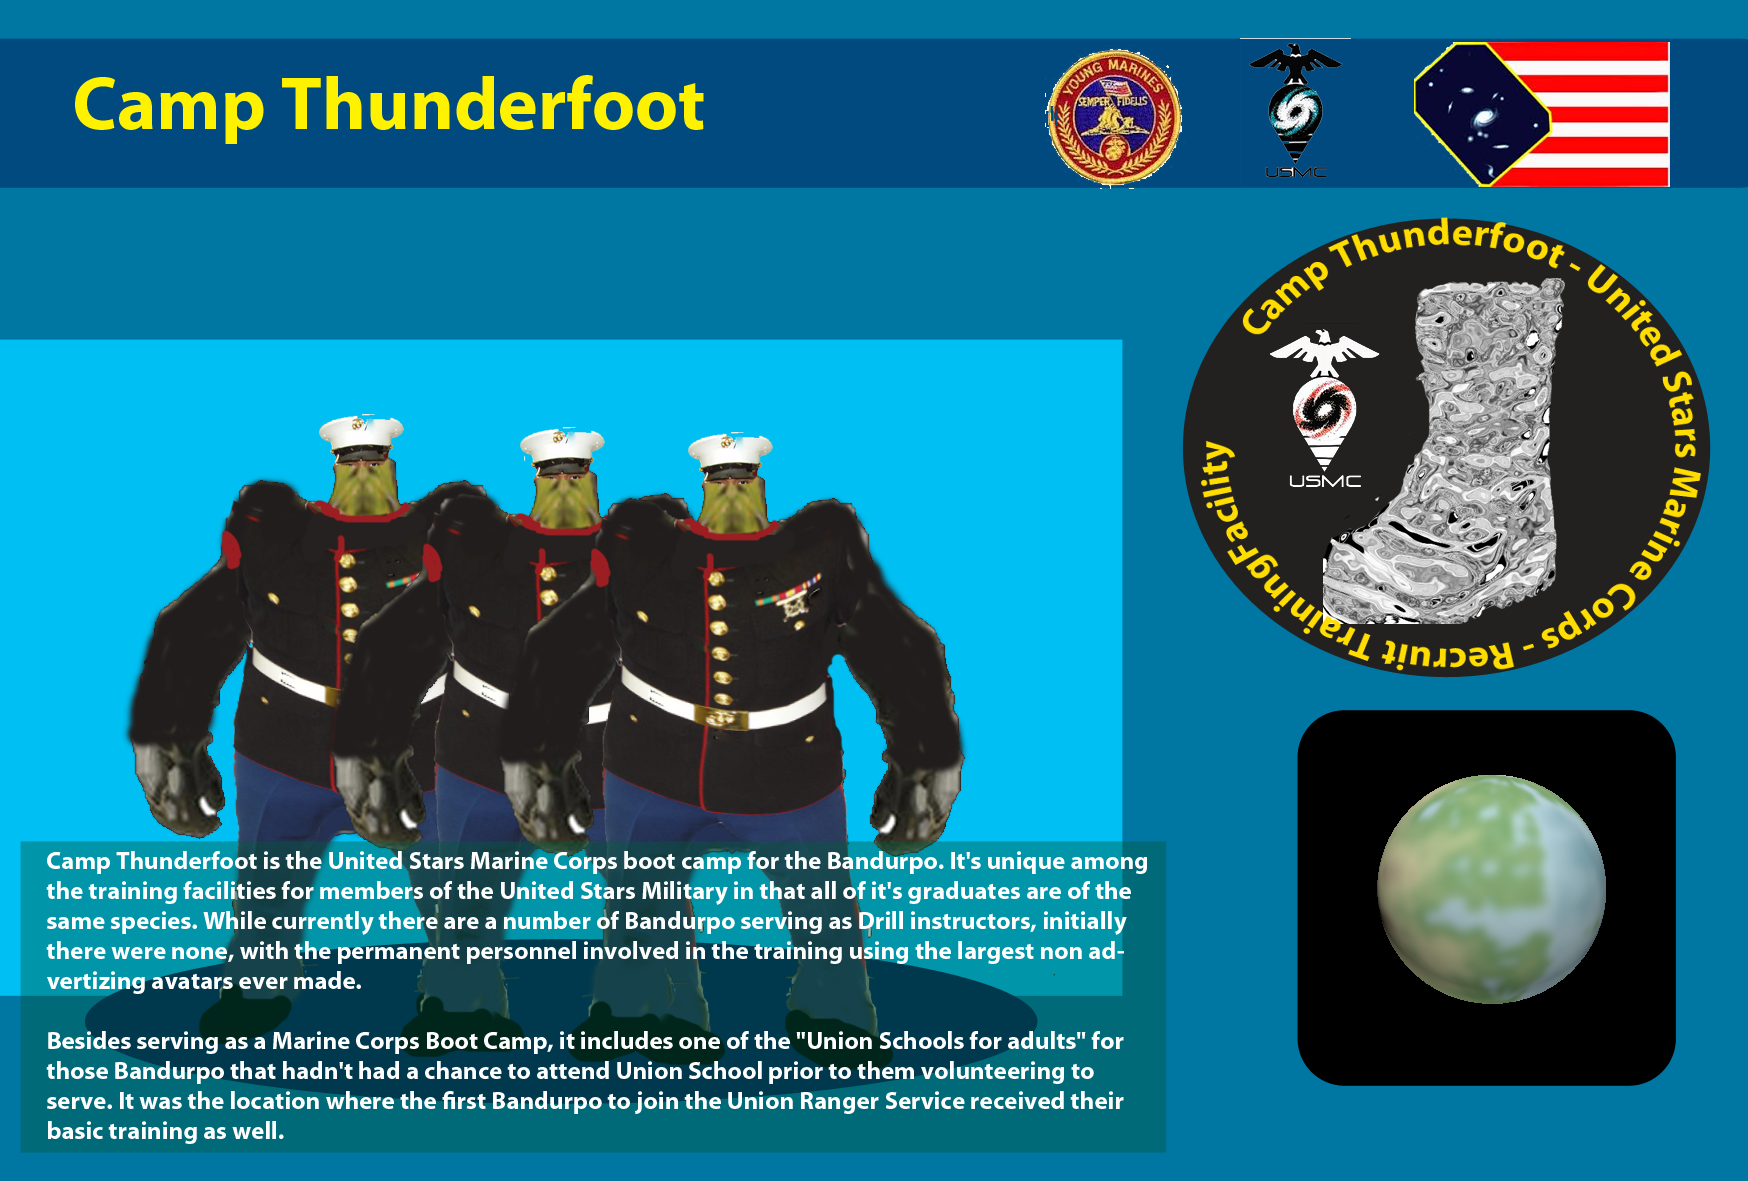 Camp Thunderfoot